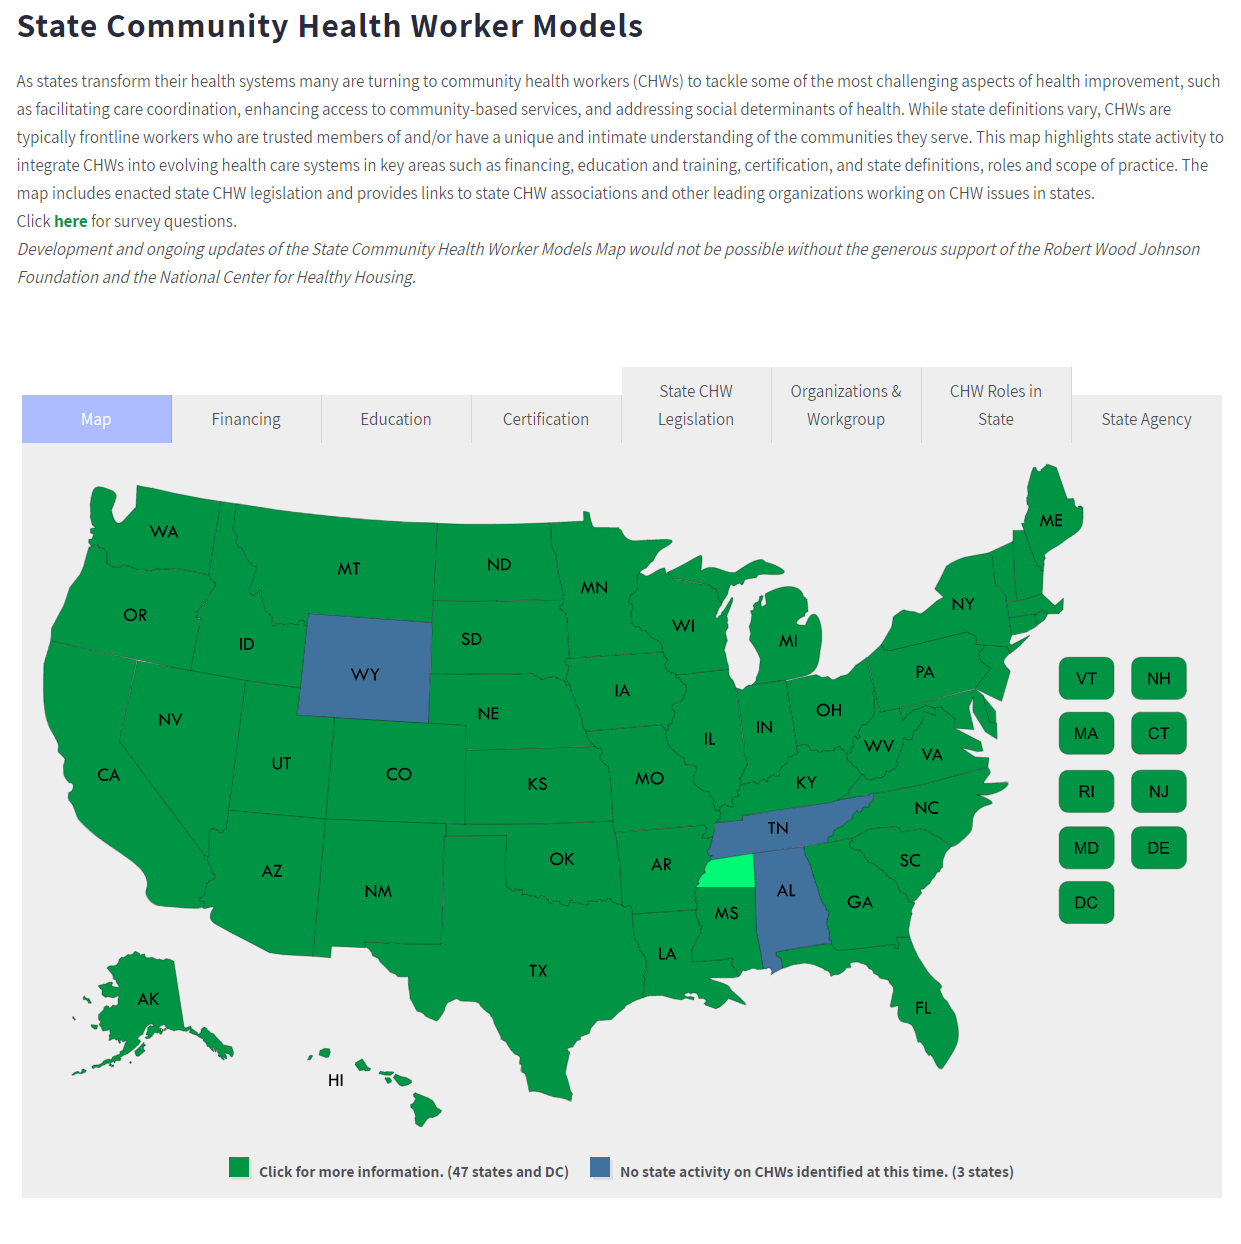 Introduction to the State Community Health Worker Models Map Tool